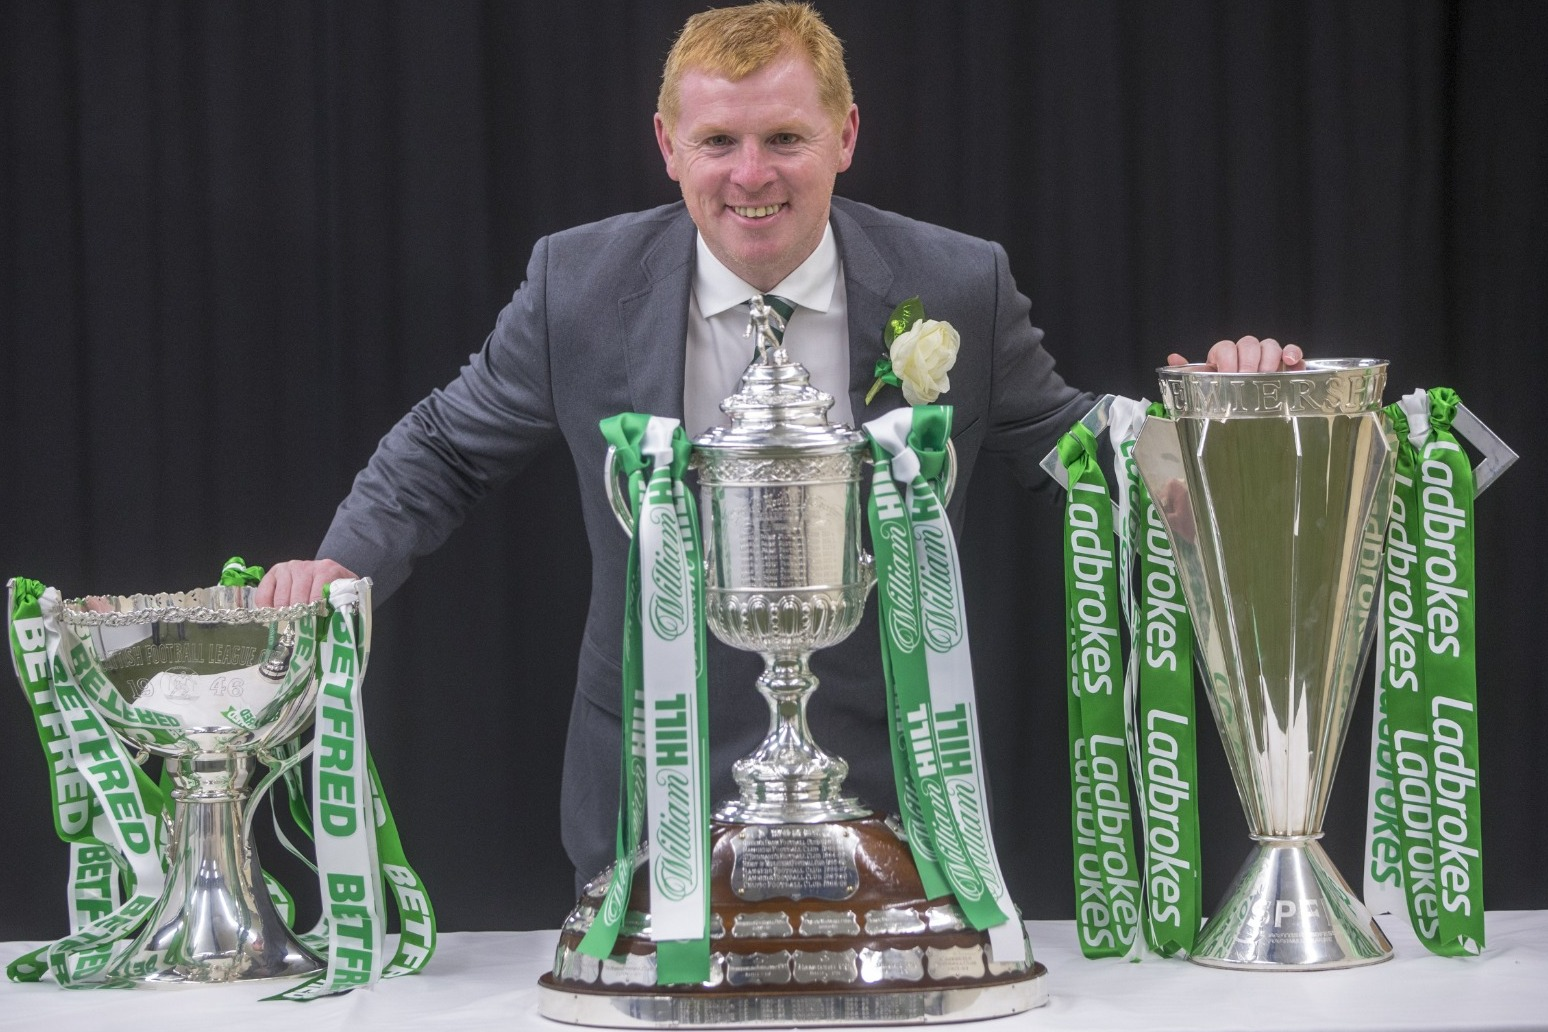 Neil Lennon resigns as Celtic manager after traumatic second stint in charge